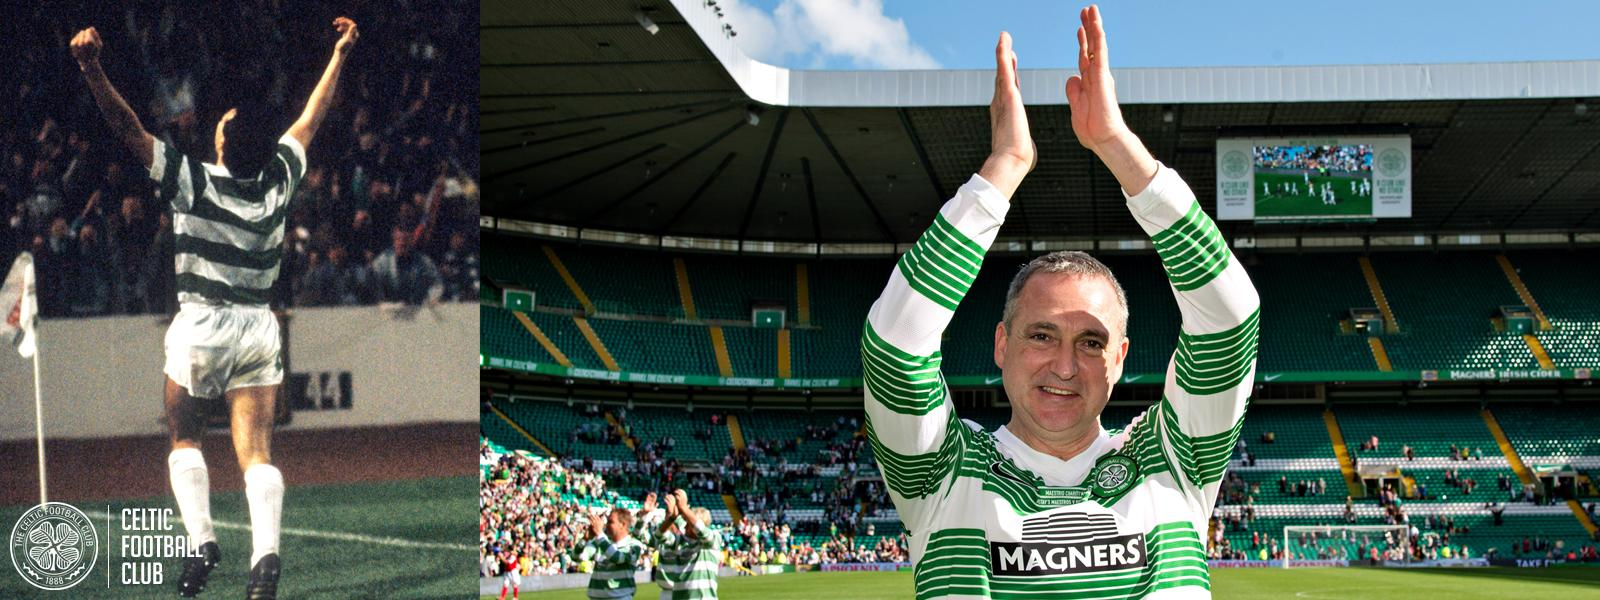 Paul McStay - The Maestro